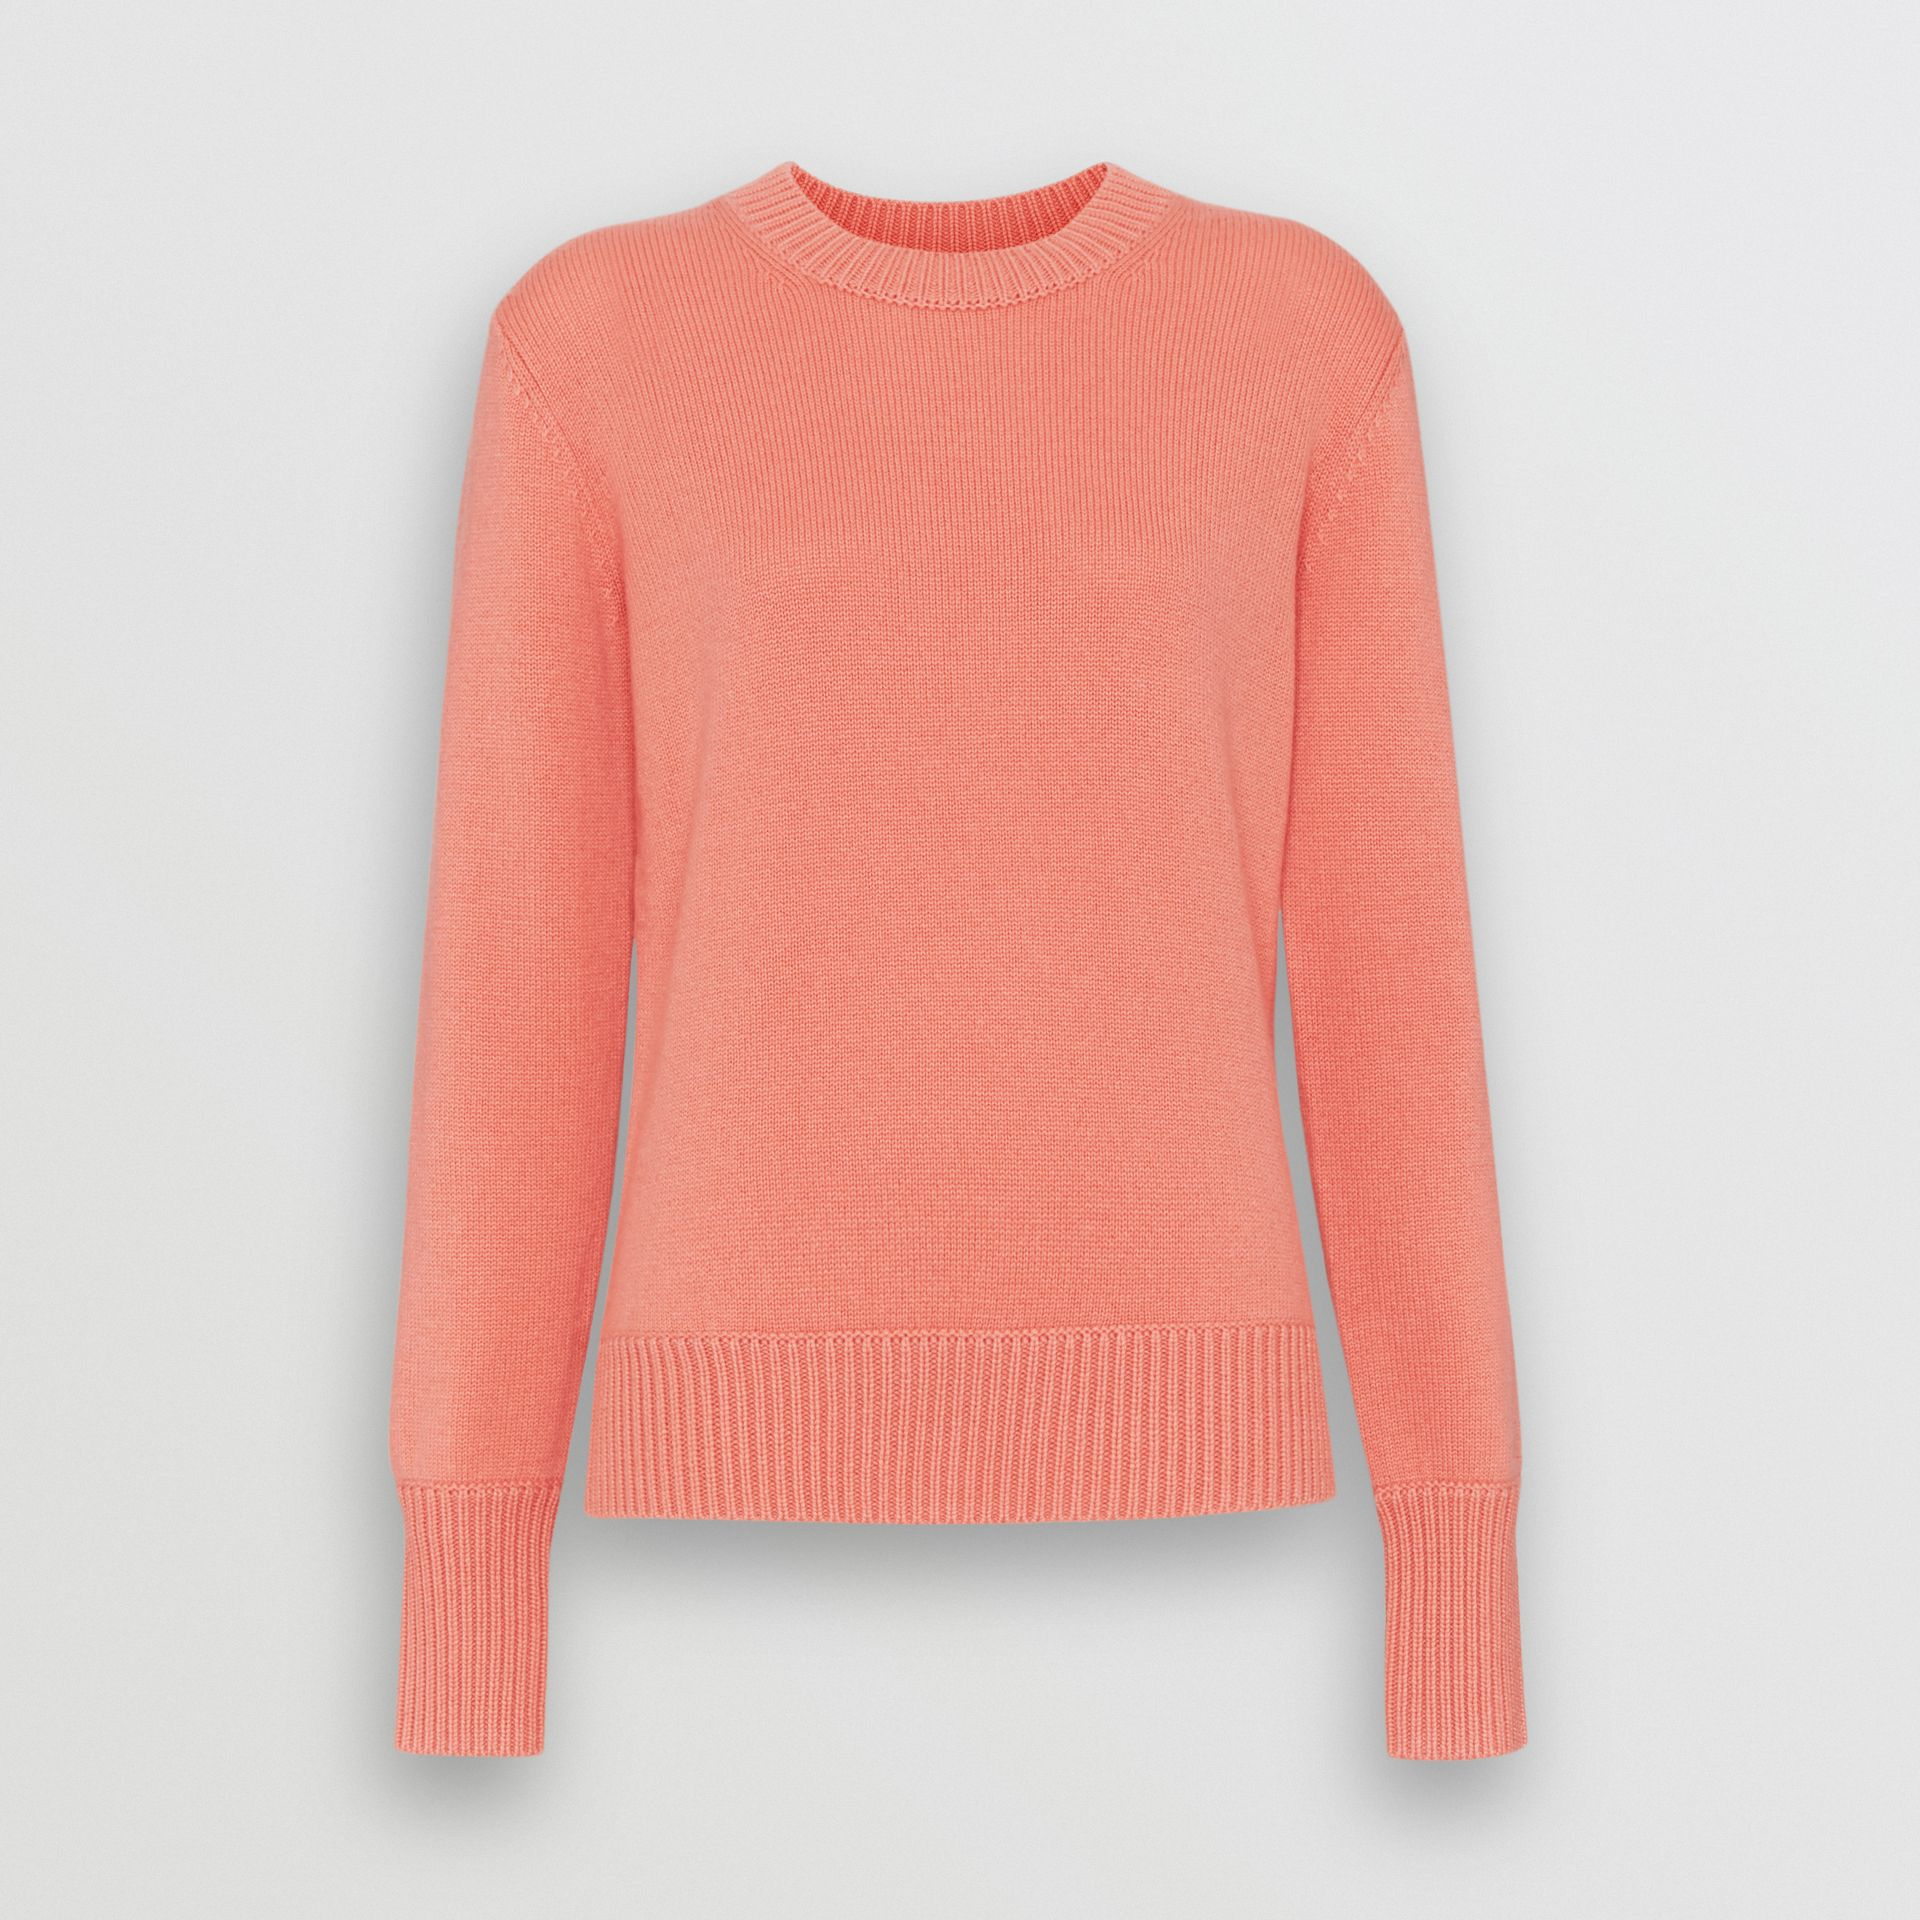 Archive Logo Appliqué Cashmere Sweater in Bright Coral Pink - Women | Burberry - gallery image 3